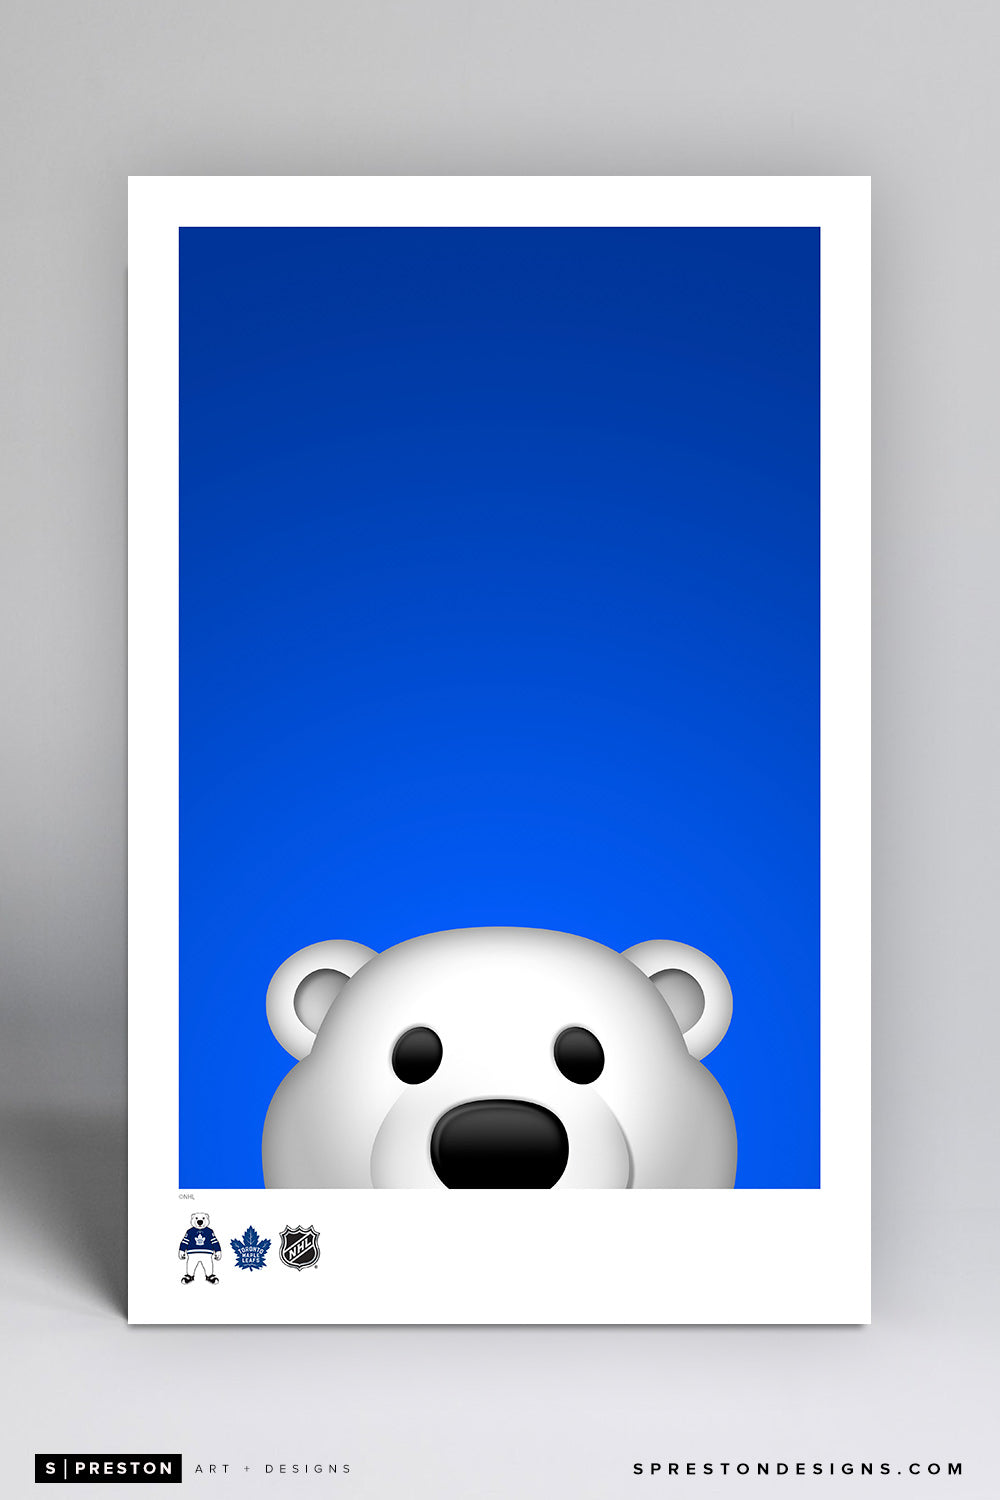 Minimalist Carlton The Bear Poster Print Toronto Maple Leafs - S Preston